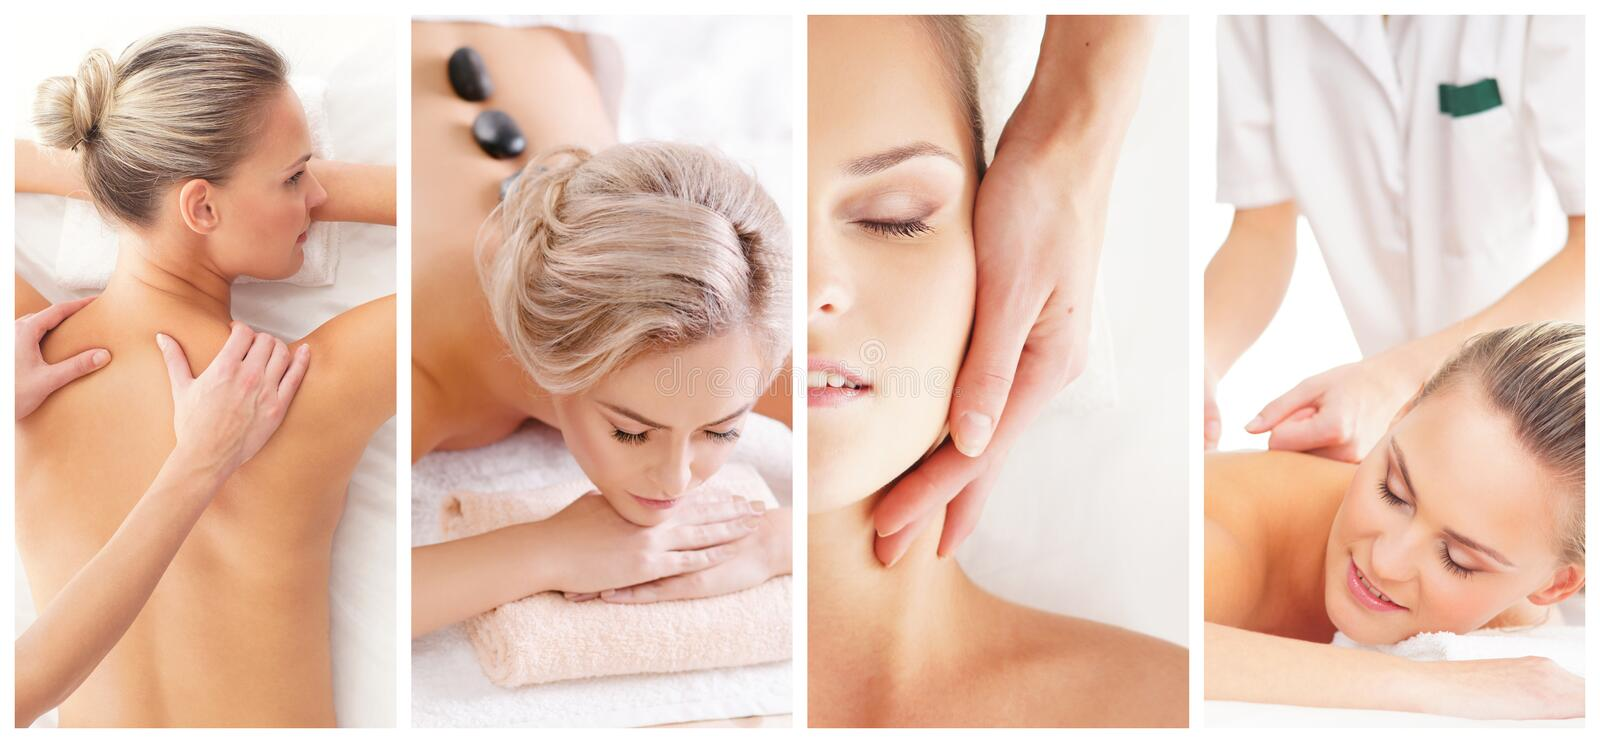 Traditional massage and healthcare treatment in spa. Young, beautiful and healthy girls having recreation therapy. royalty free stock photos